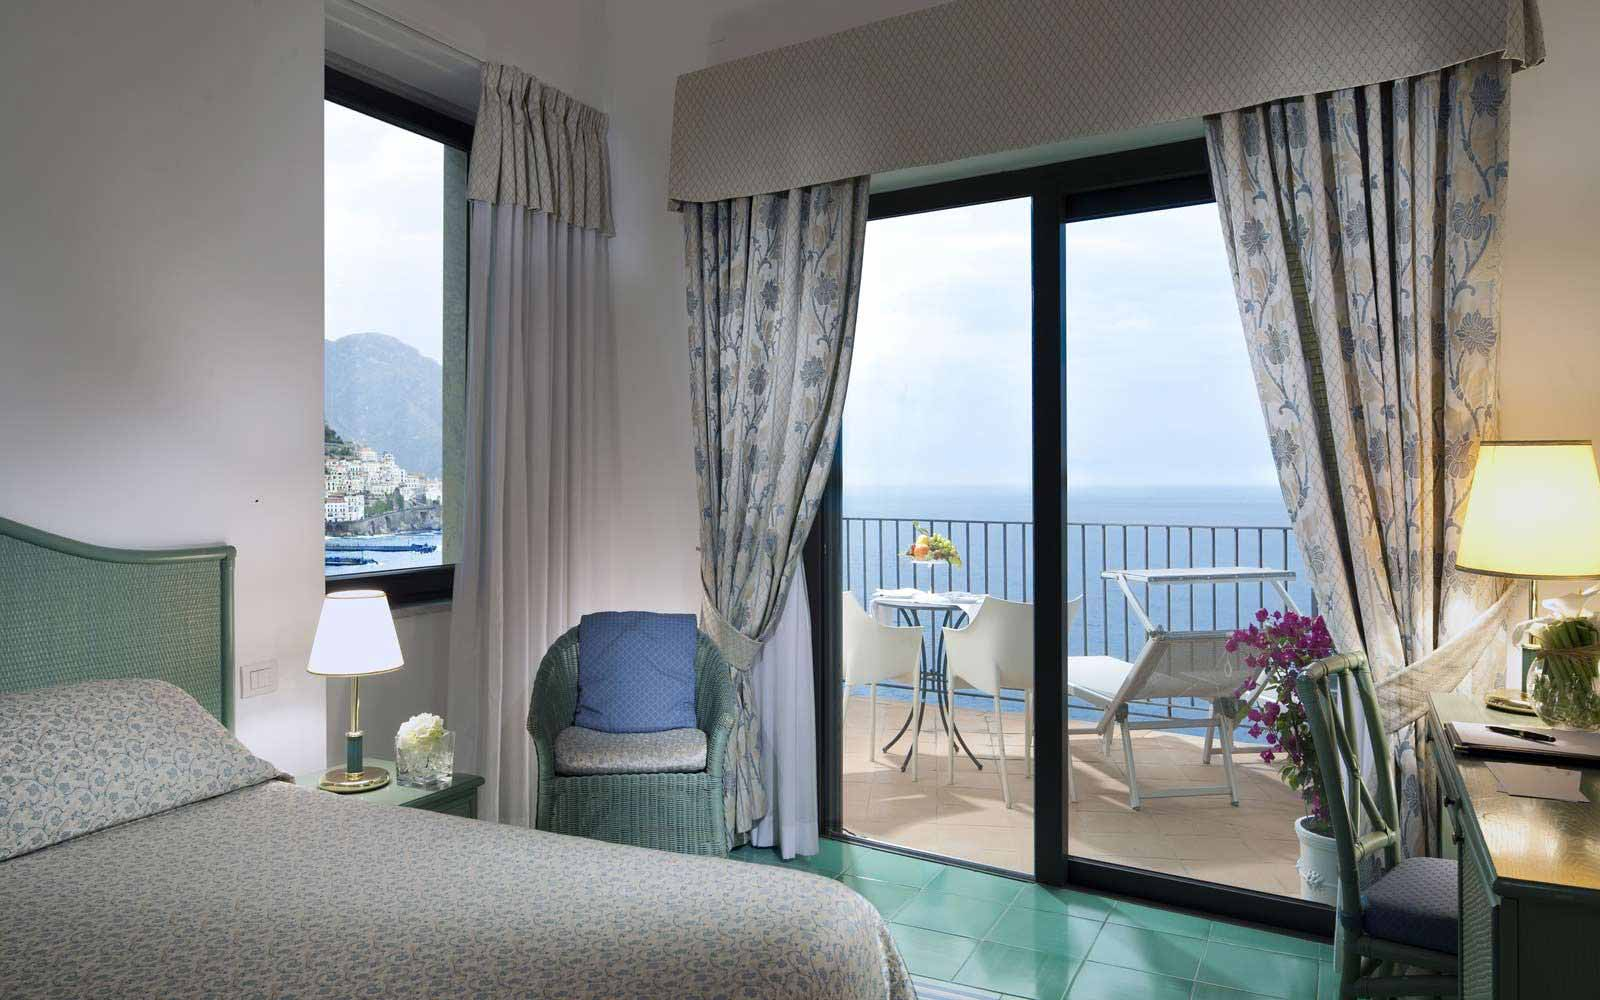 Superior room at Hotel Miramalfi